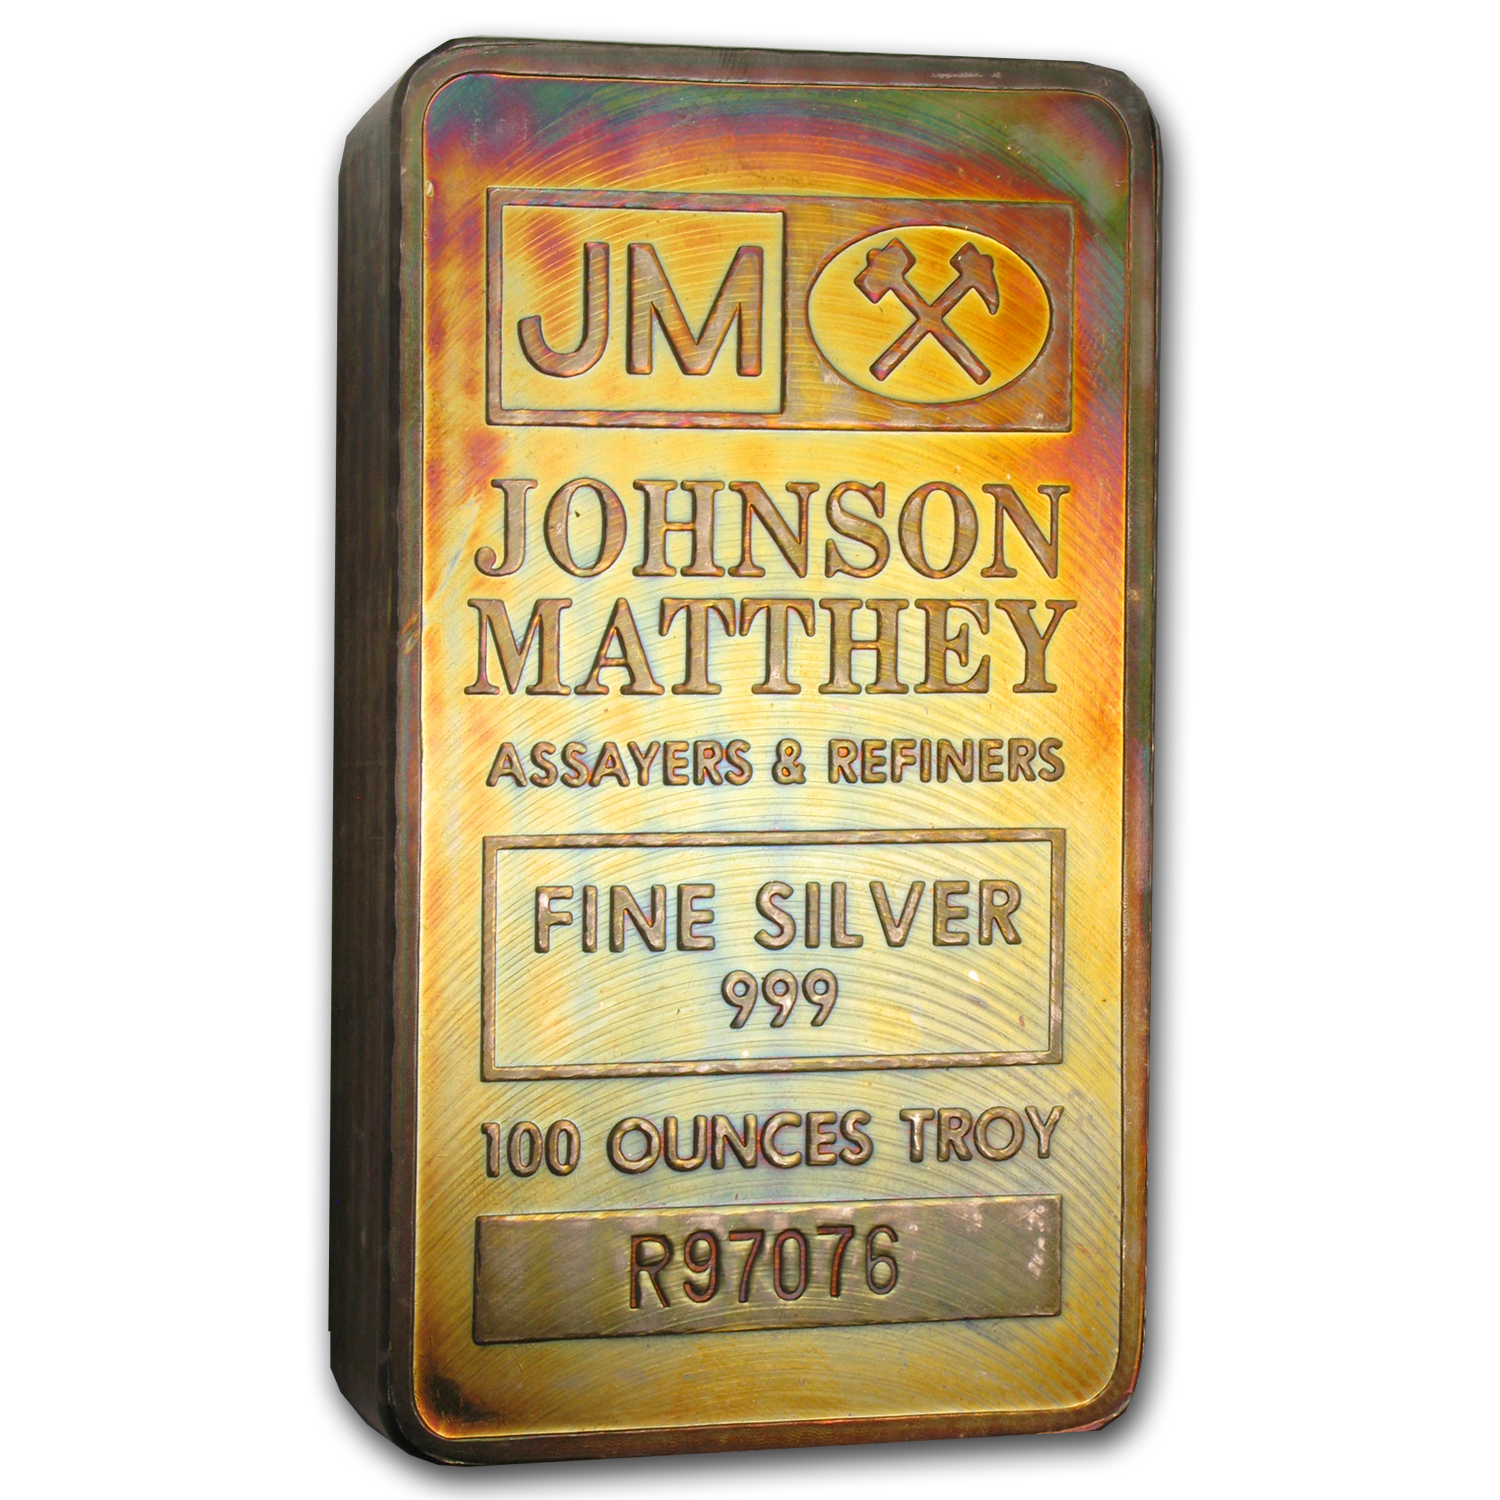 100 oz Silver Bars - Johnson Matthey (Pressed/Beautiful Toning)